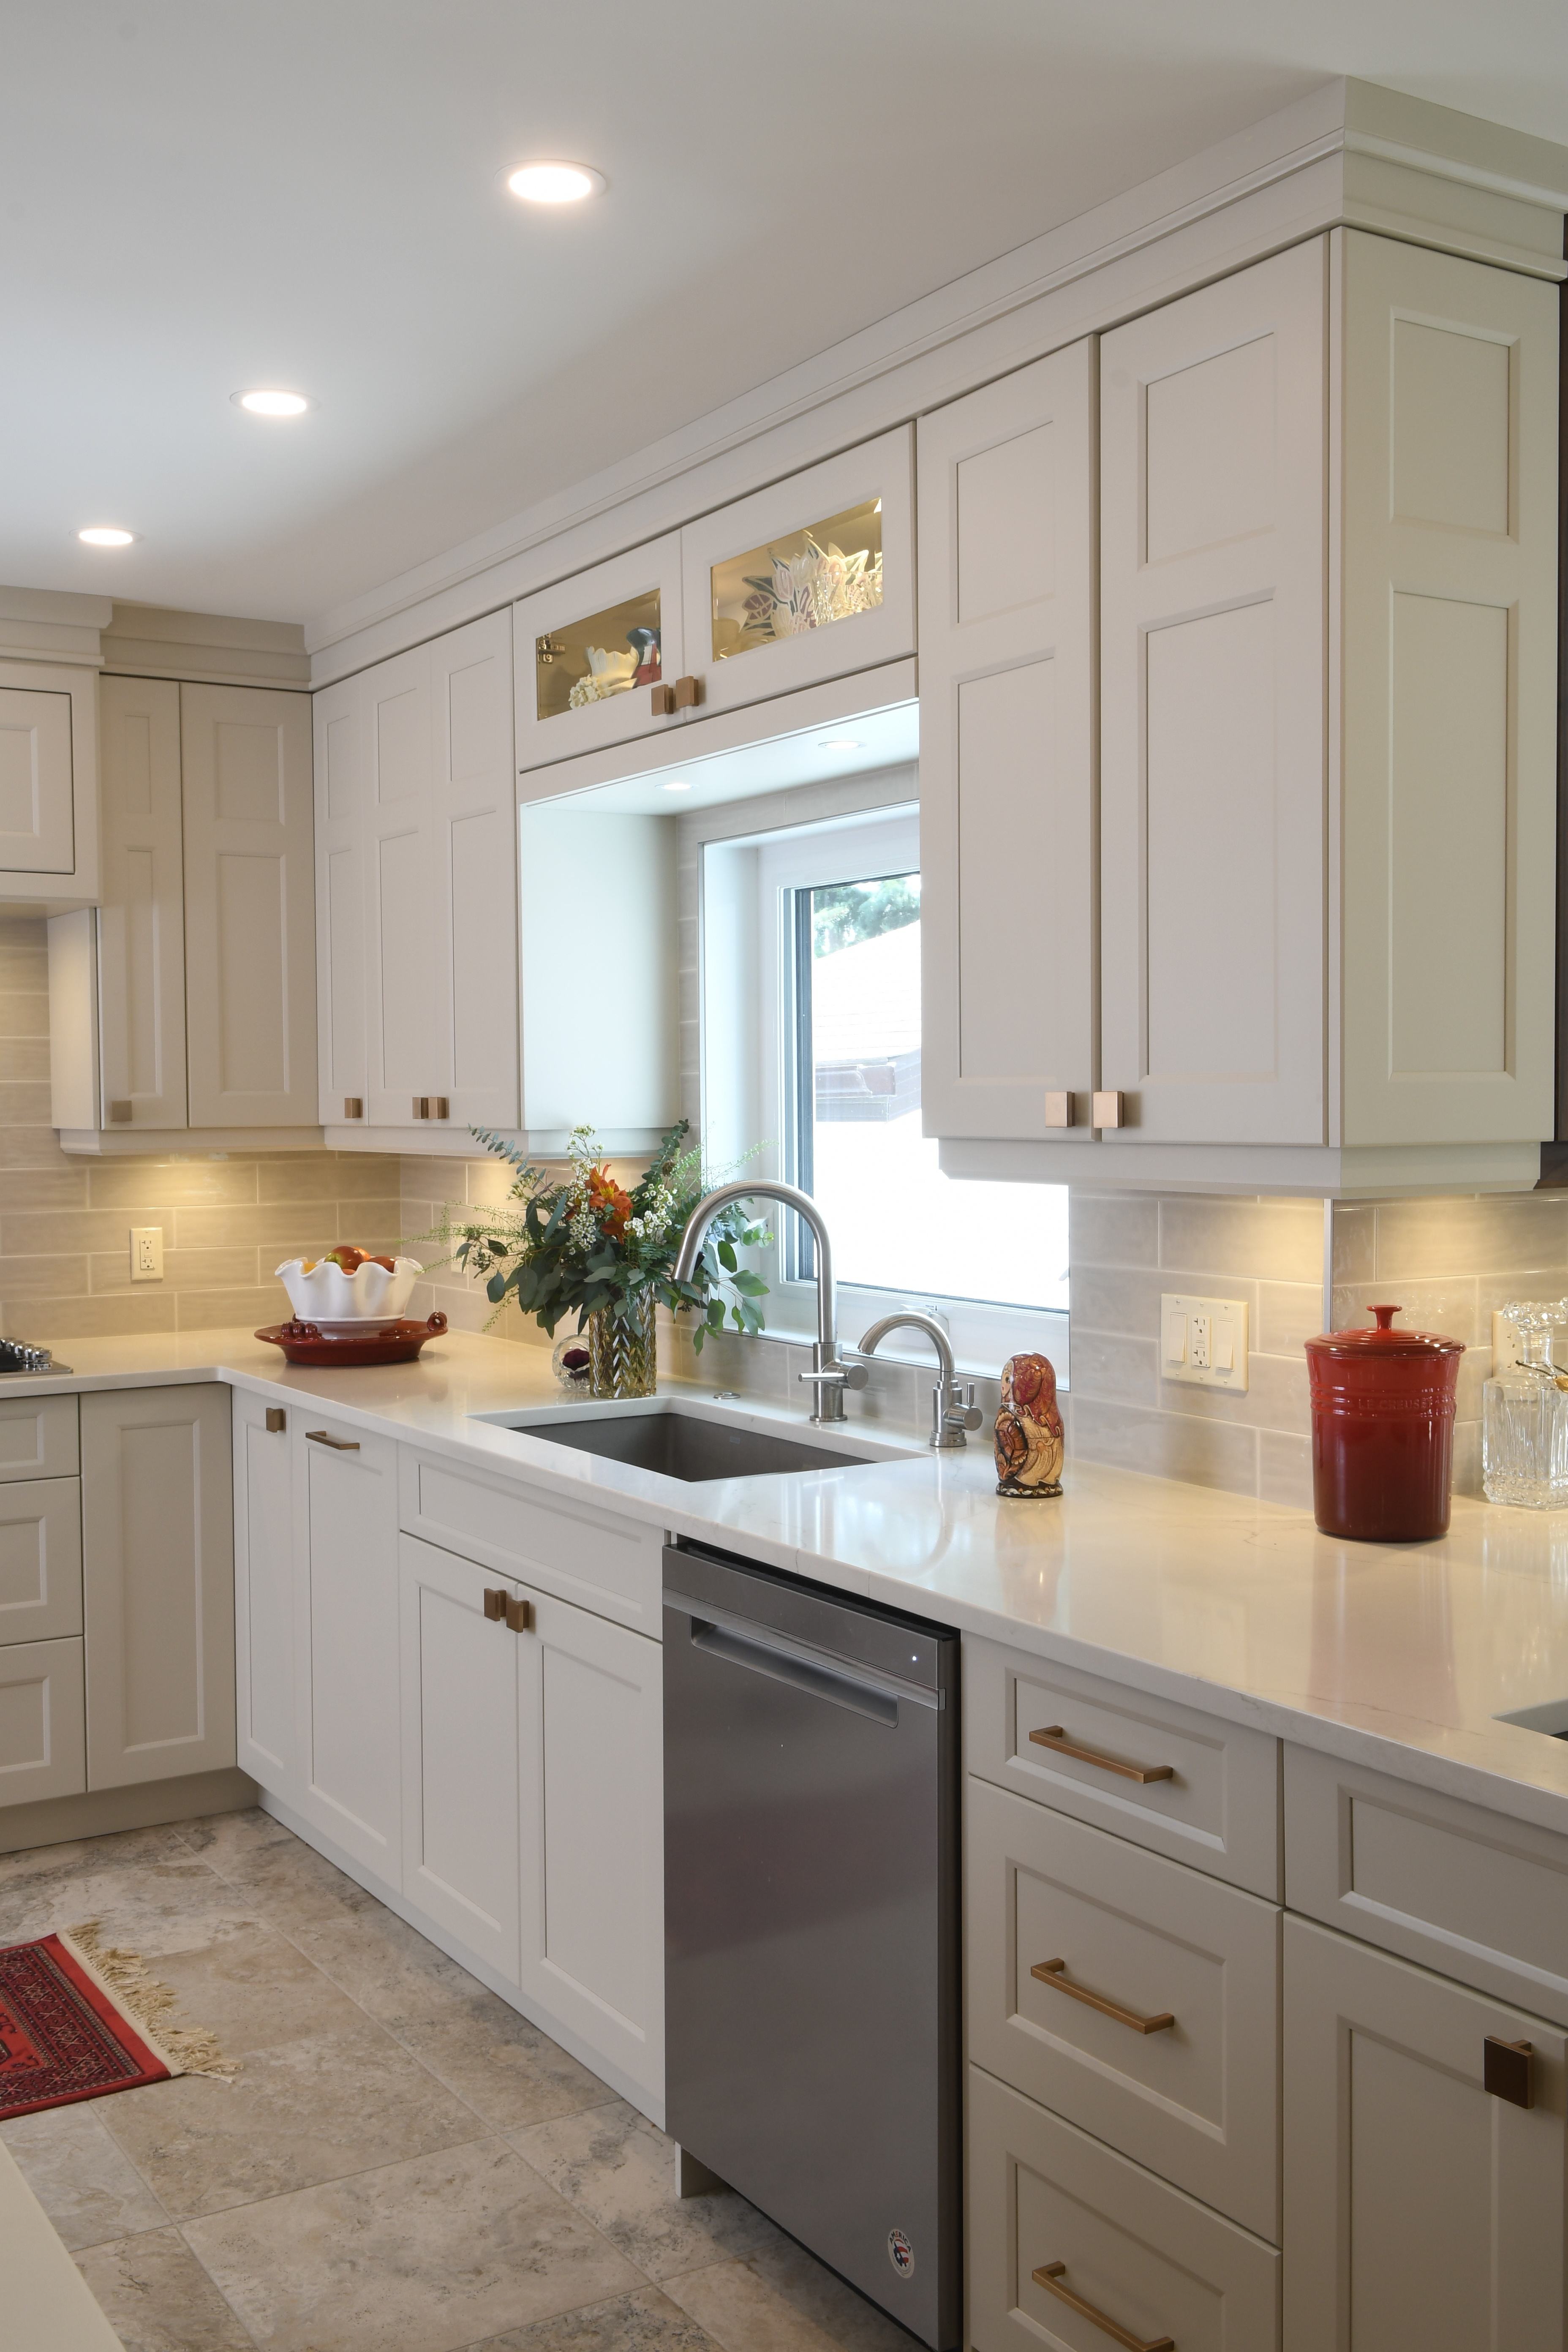 Breathe New Life into Your Home With Custom Cabinets - Image 3